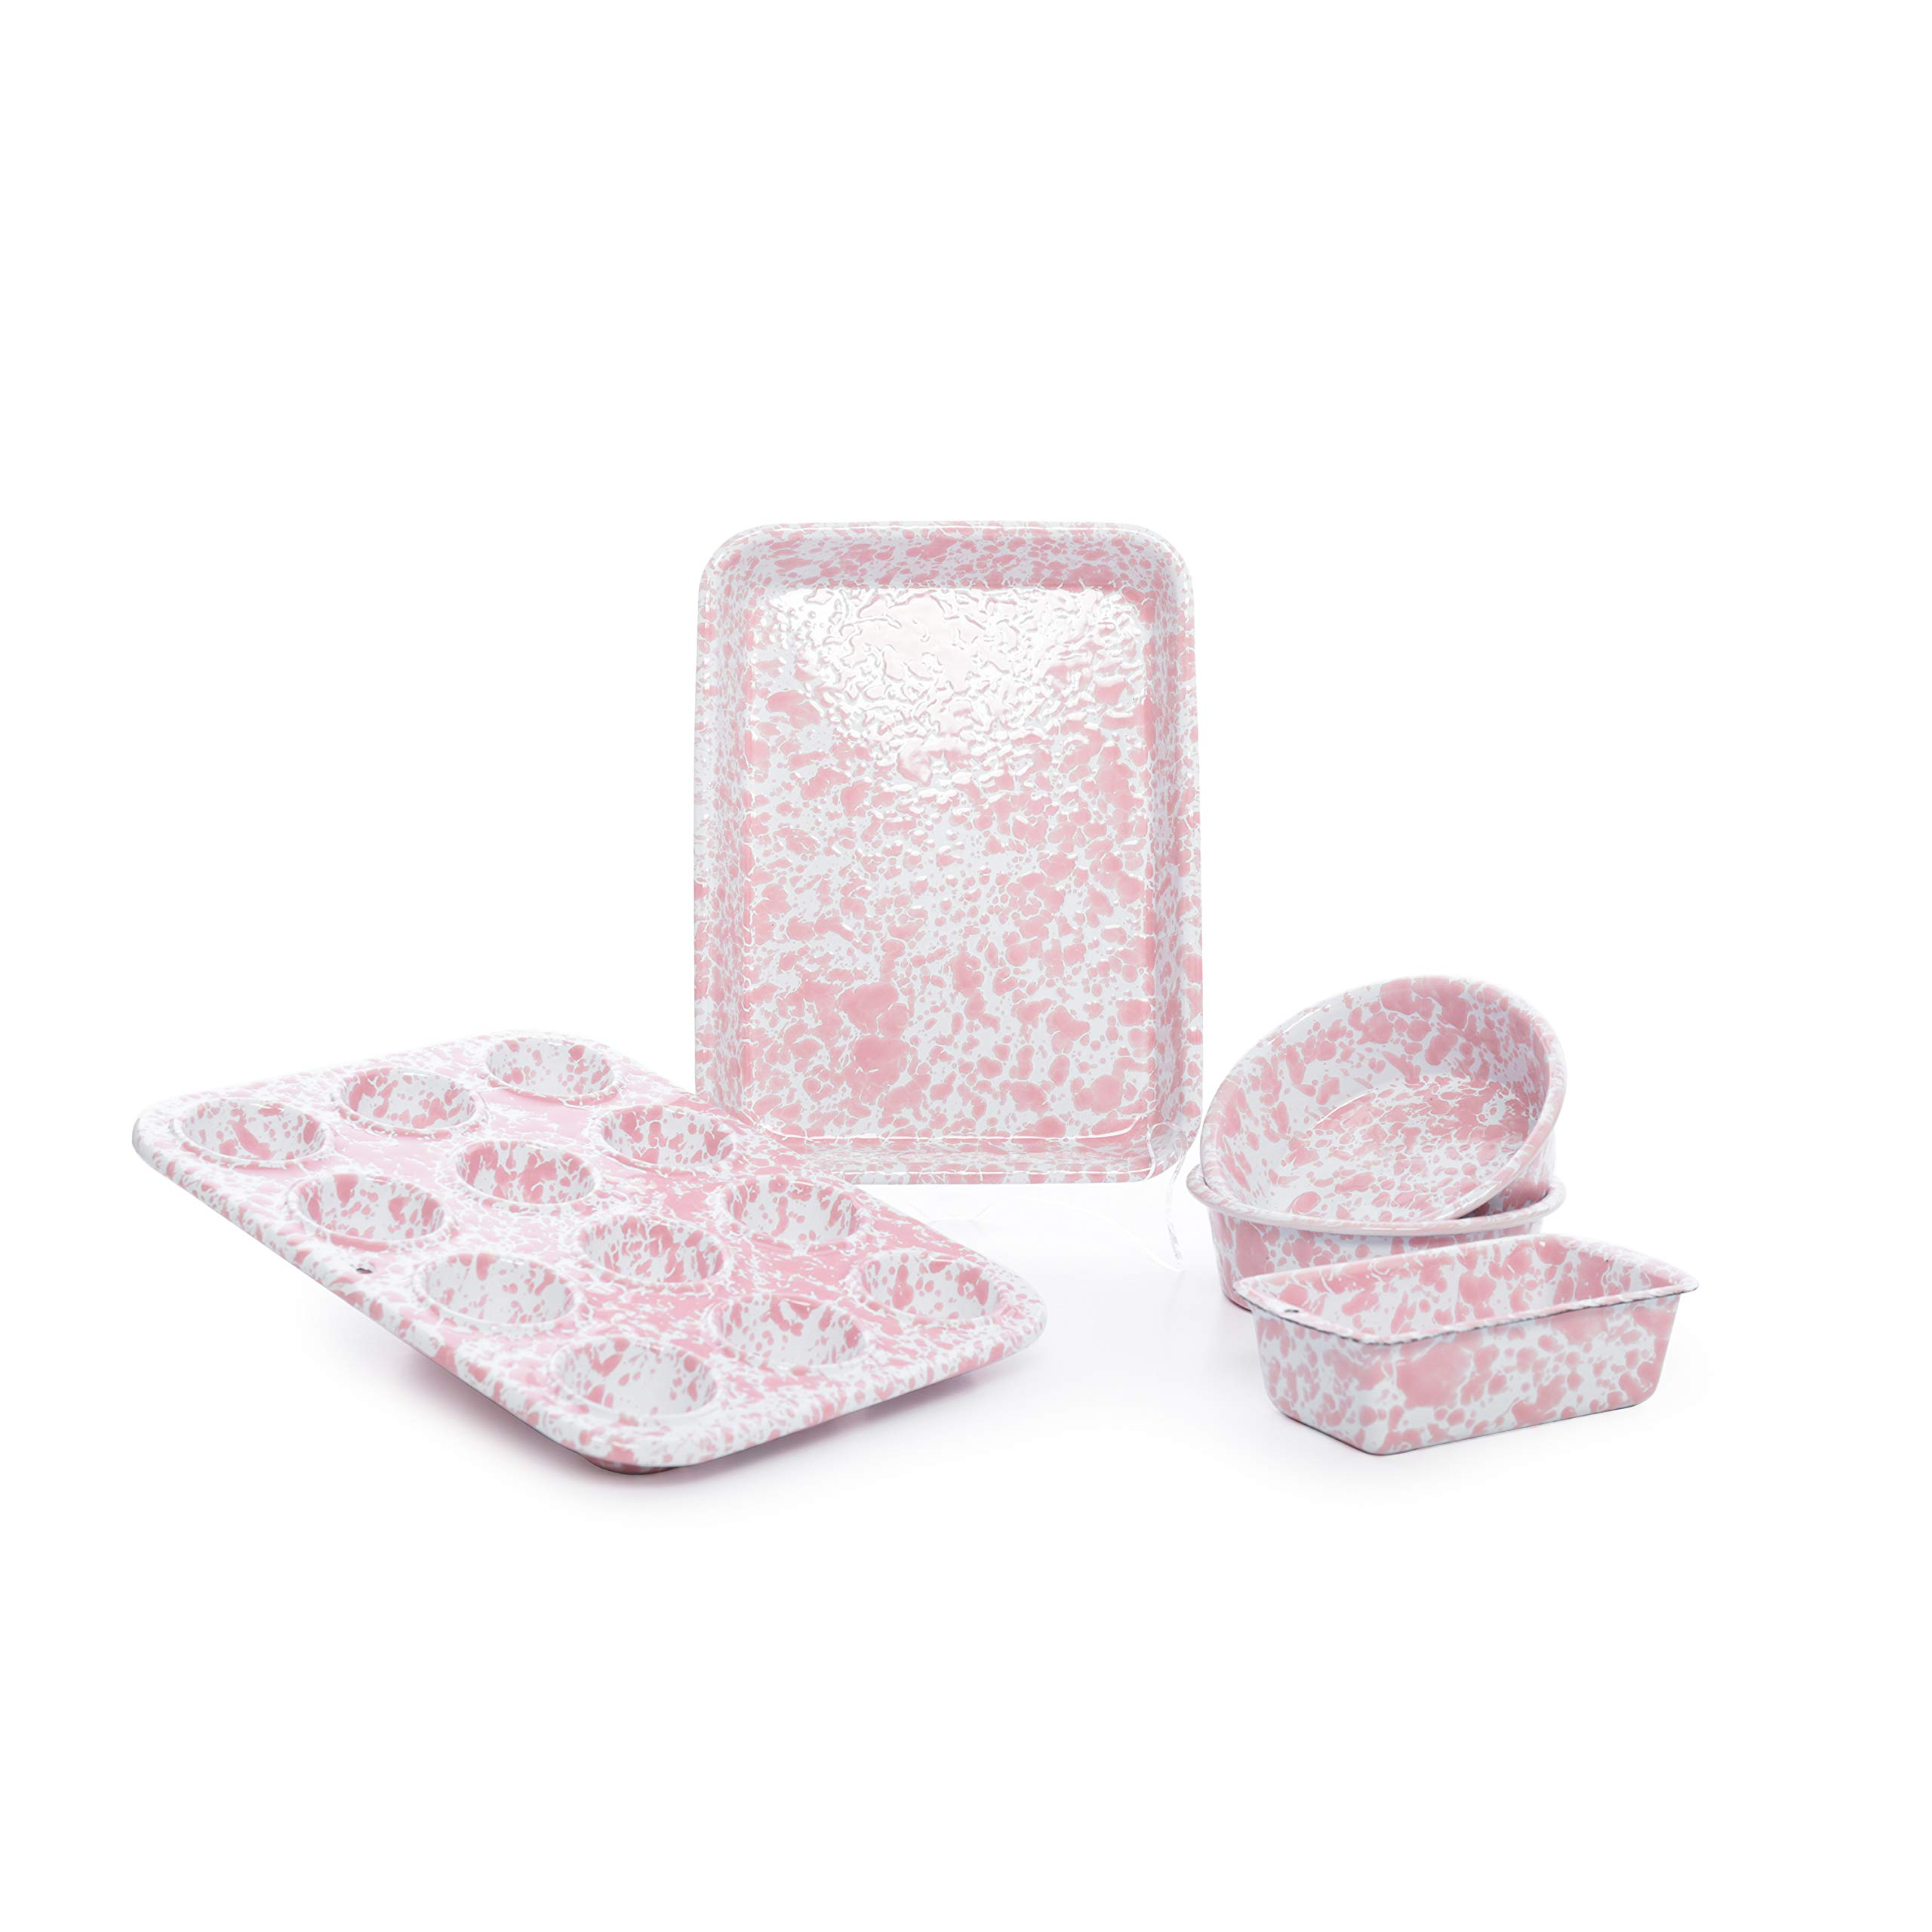 Enamelware Children's First Bake Set, 5 piece, Pink/White Splatter by Crow Canyon Home (Image #1)